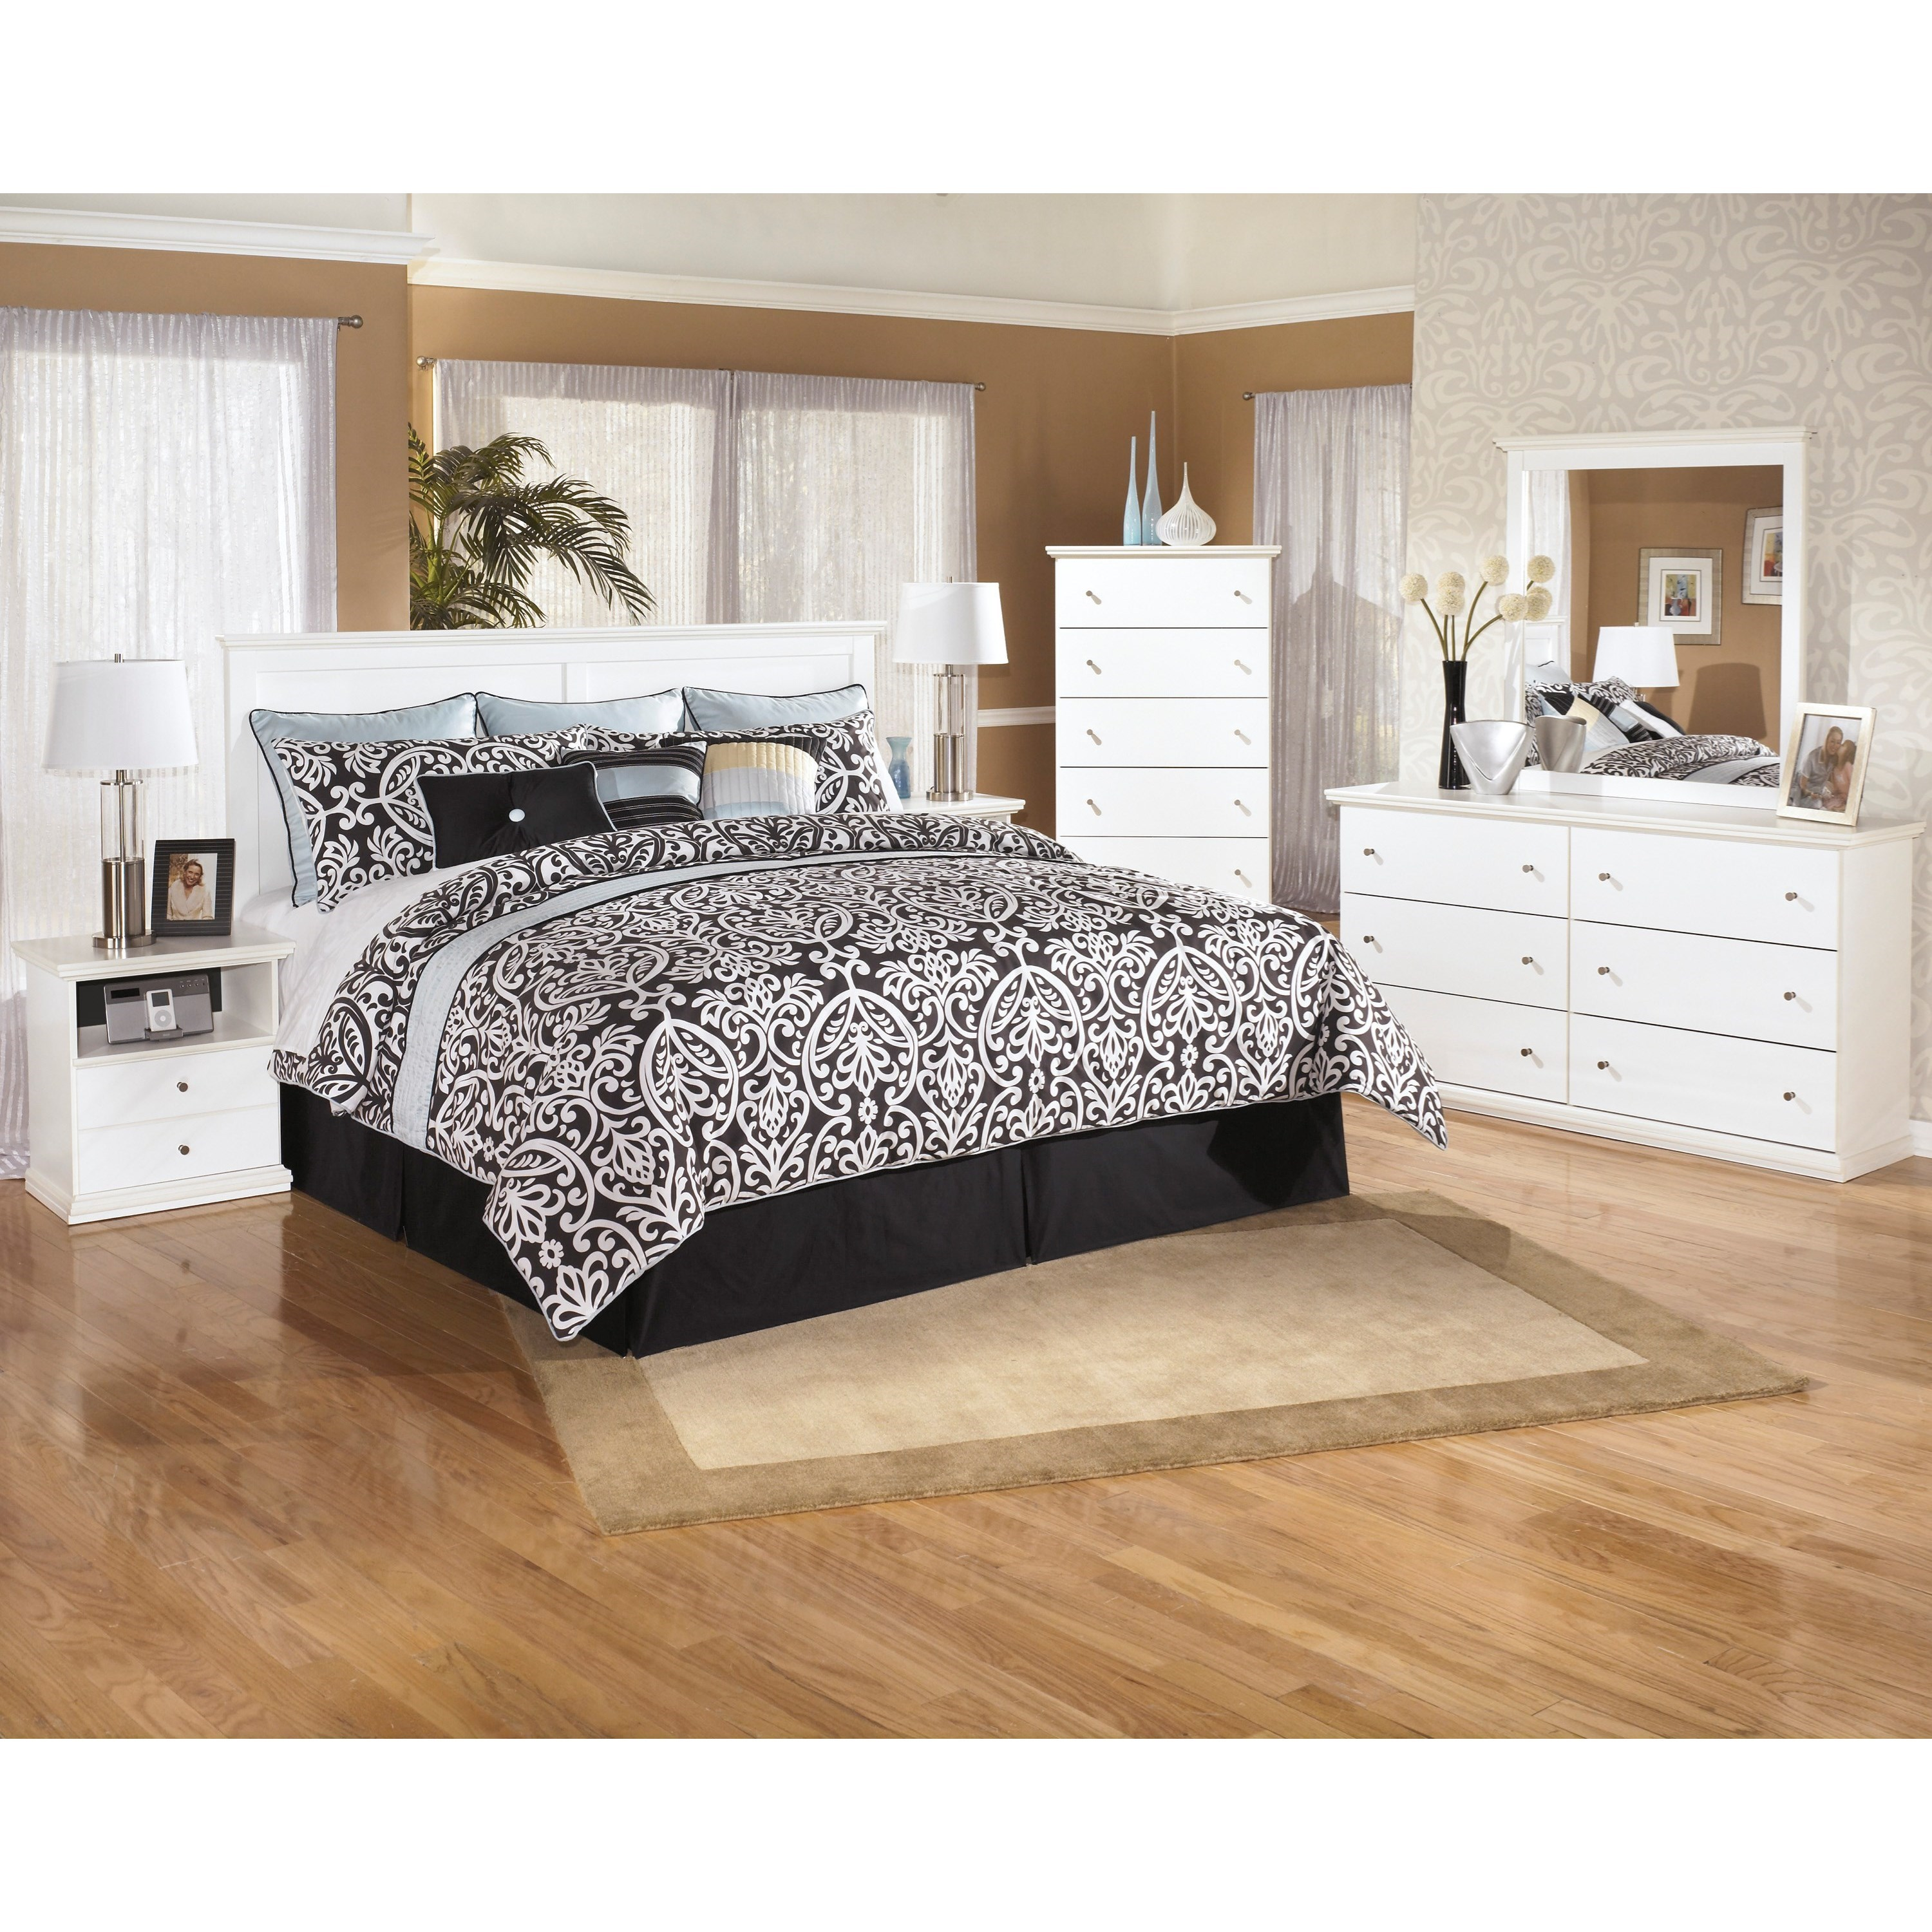 Bostwick Shoals King Bedroom Group by Signature Design by Ashley at Standard Furniture